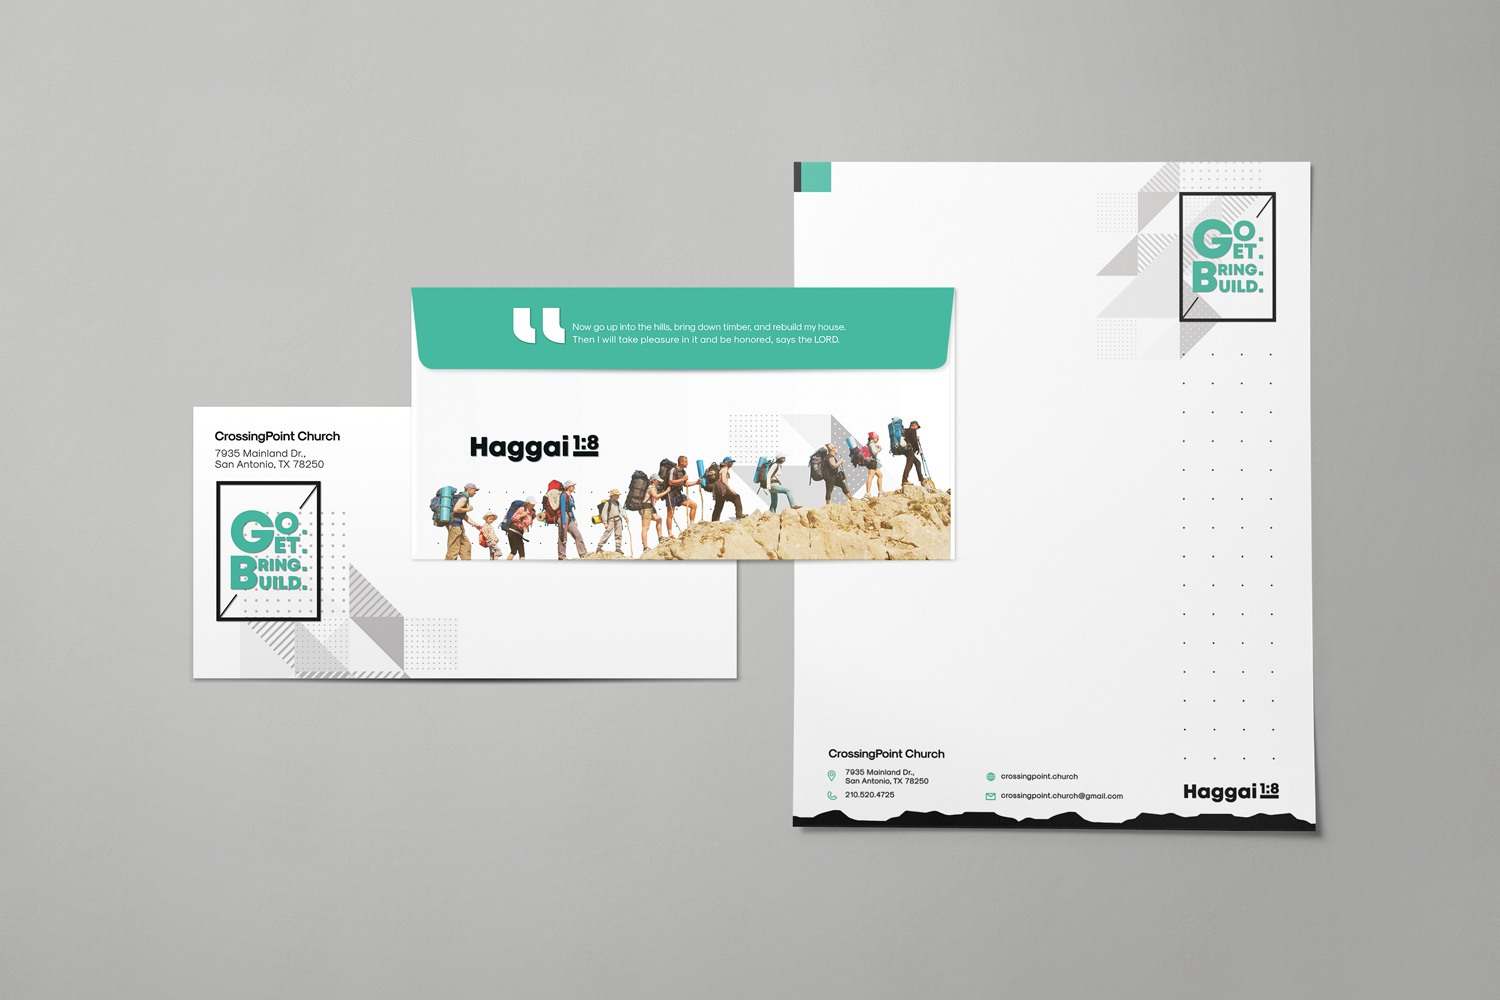 church stewardship campaign letterhead and envelope design examples and campaign themes by Abstract Union